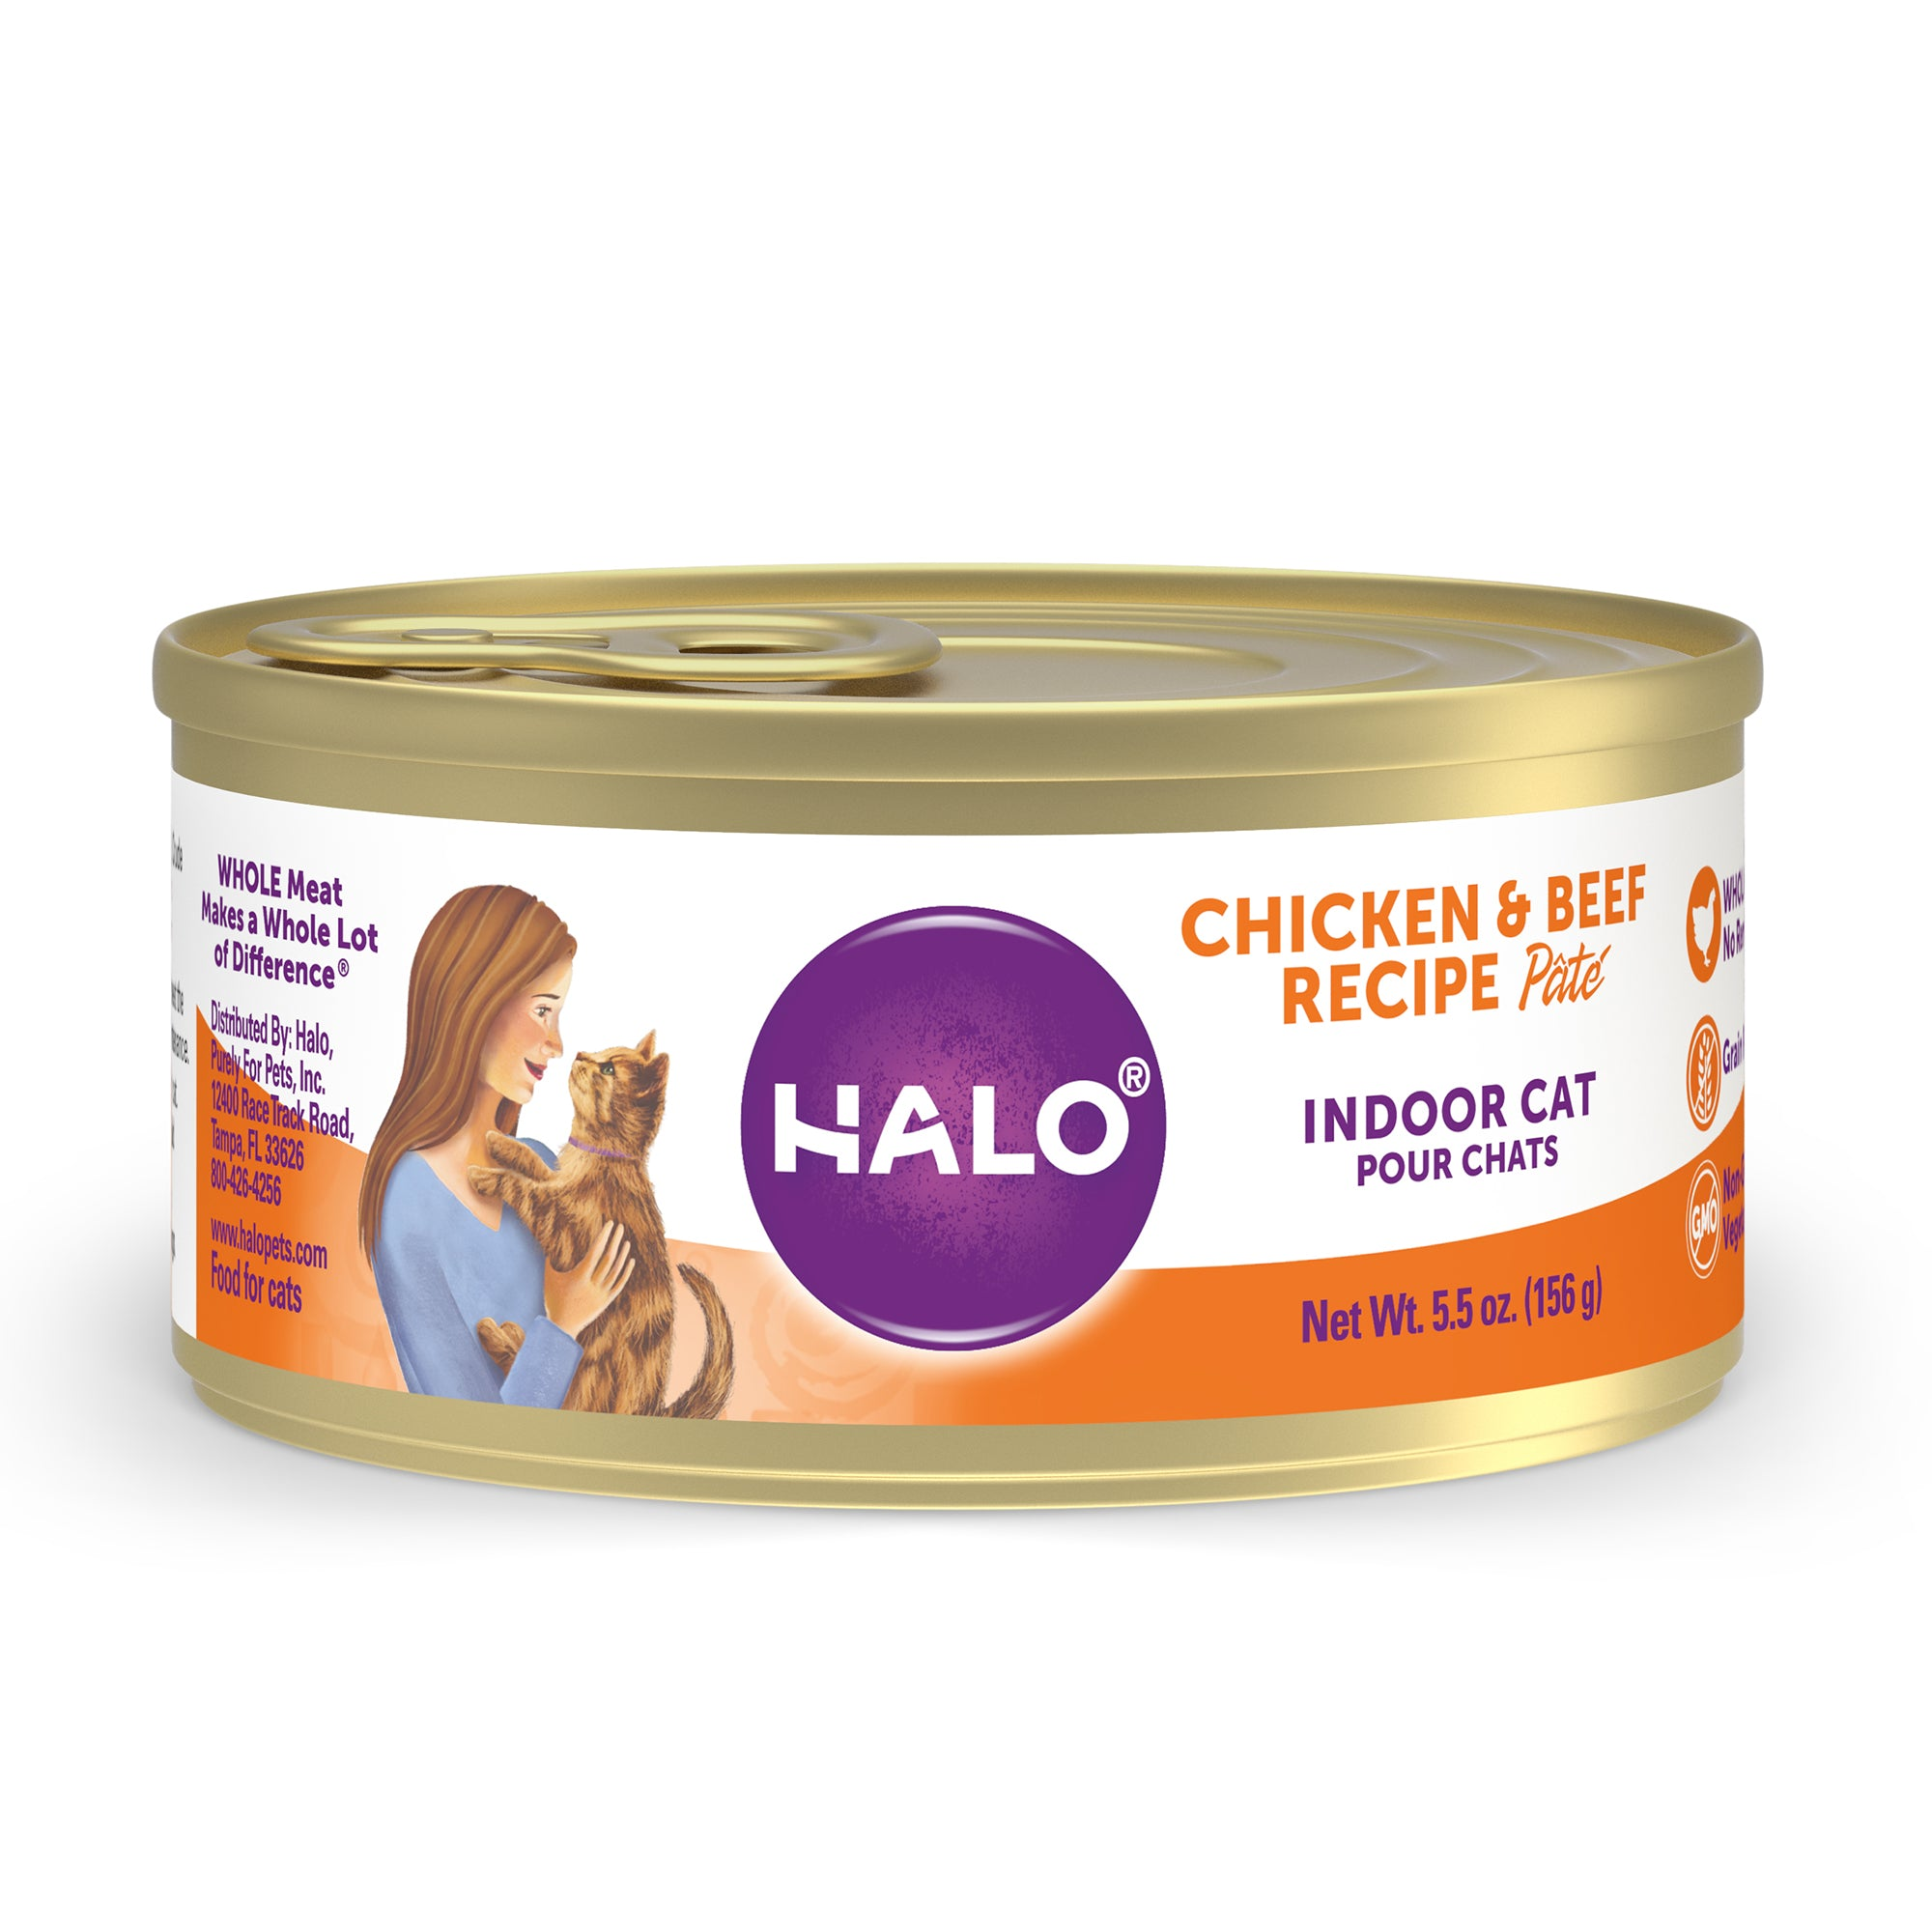 Halo Indoor Cat - Grain Free Chicken & Beef Recipe Pâté